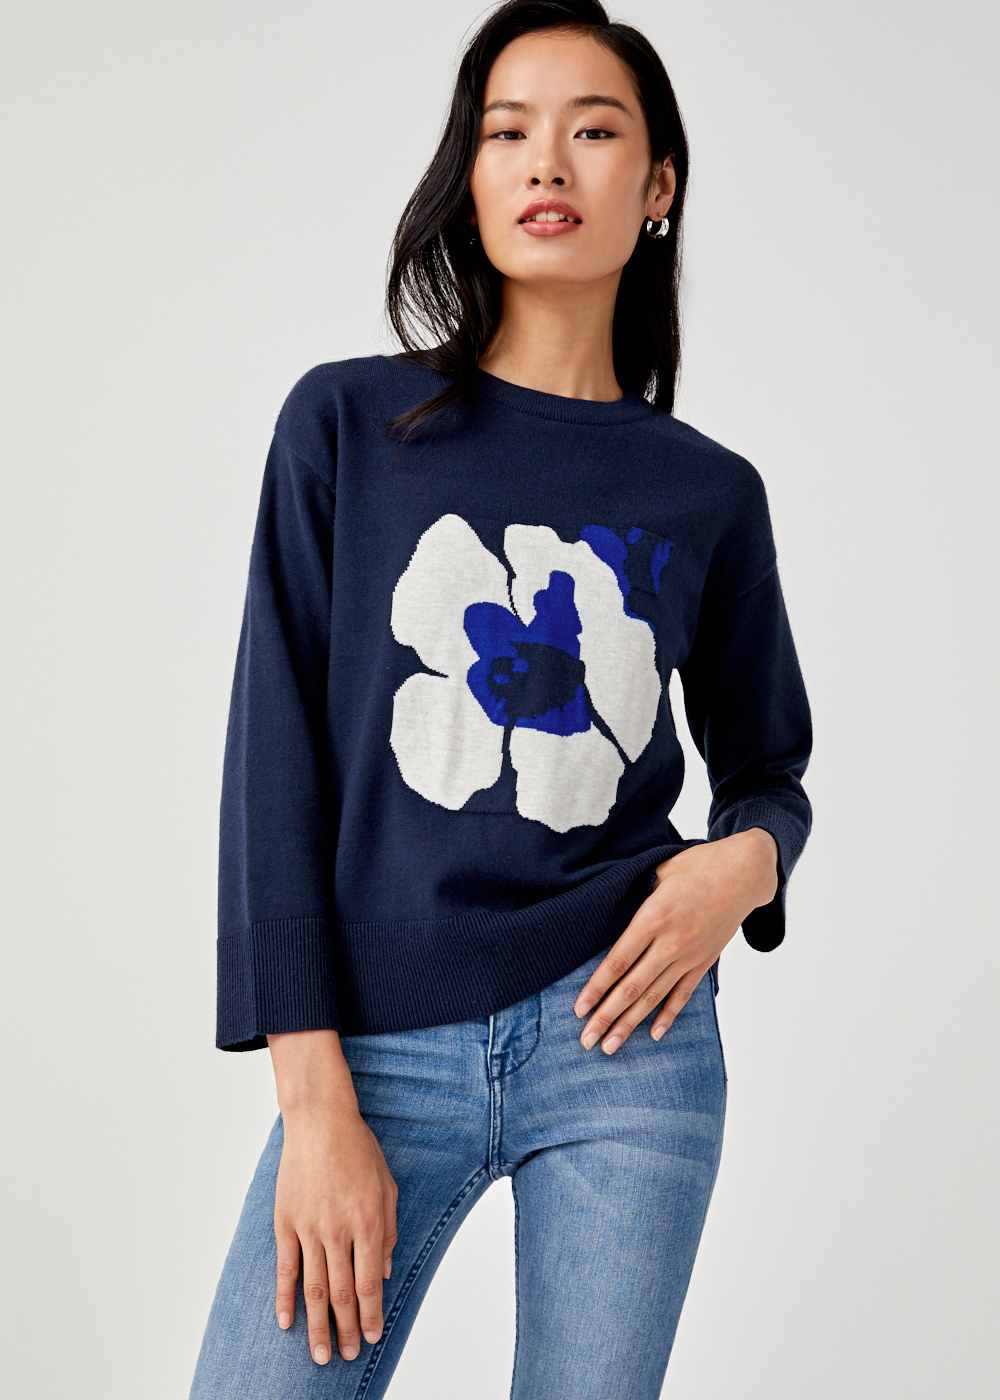 Serenity Printed Knit Sweater